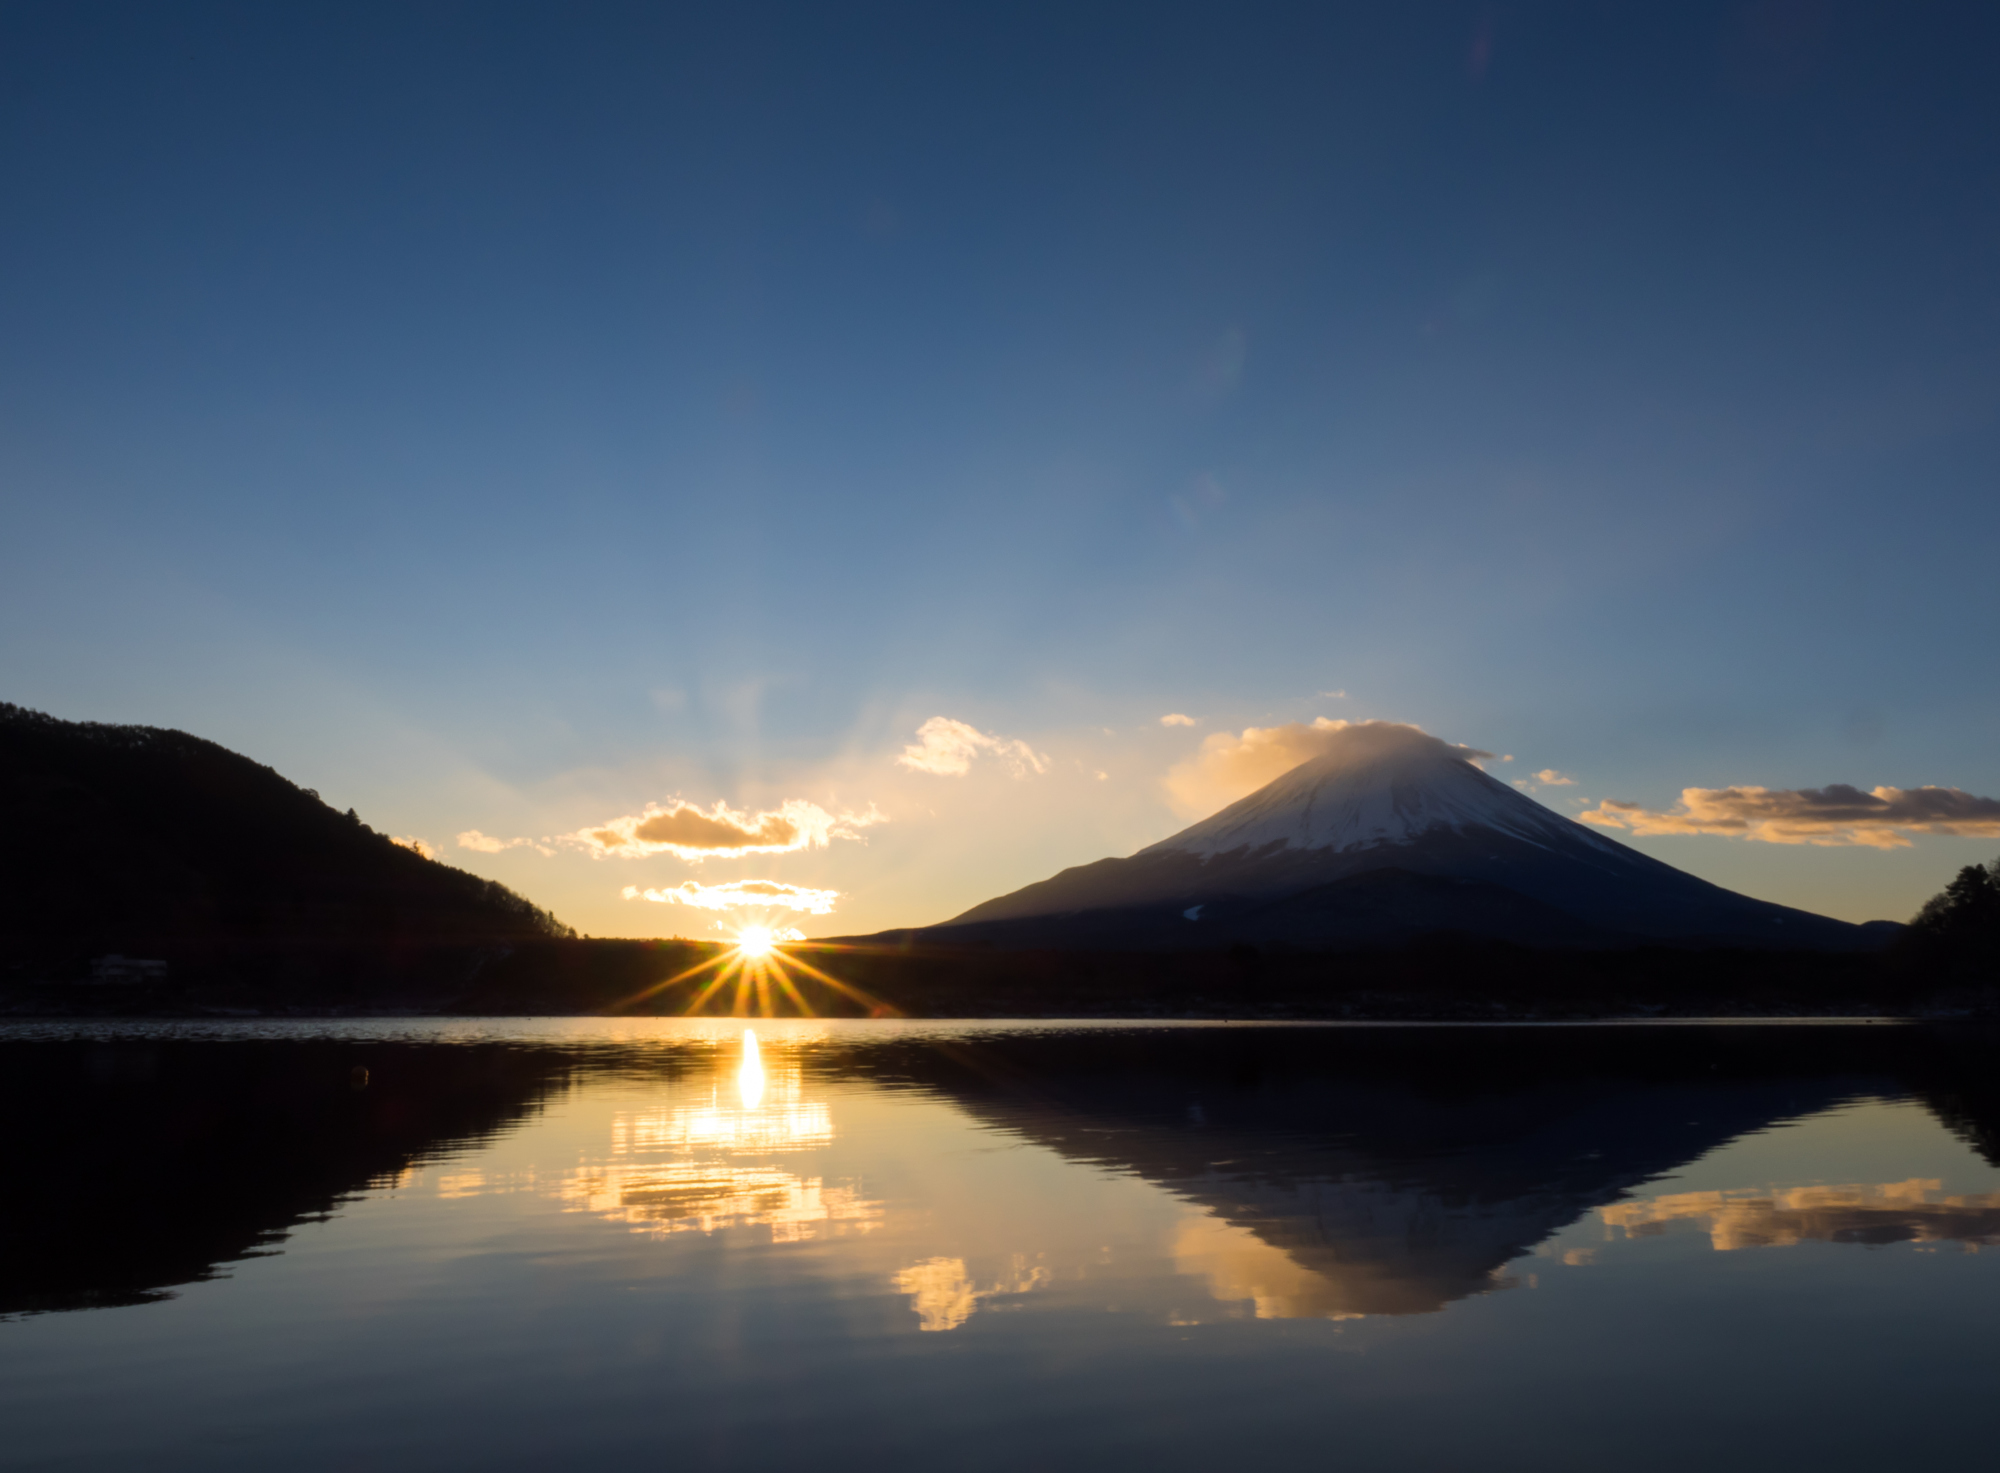 A new dawn: The sun rises by Mount Fuji one early morning in Japan. | ISTOCK